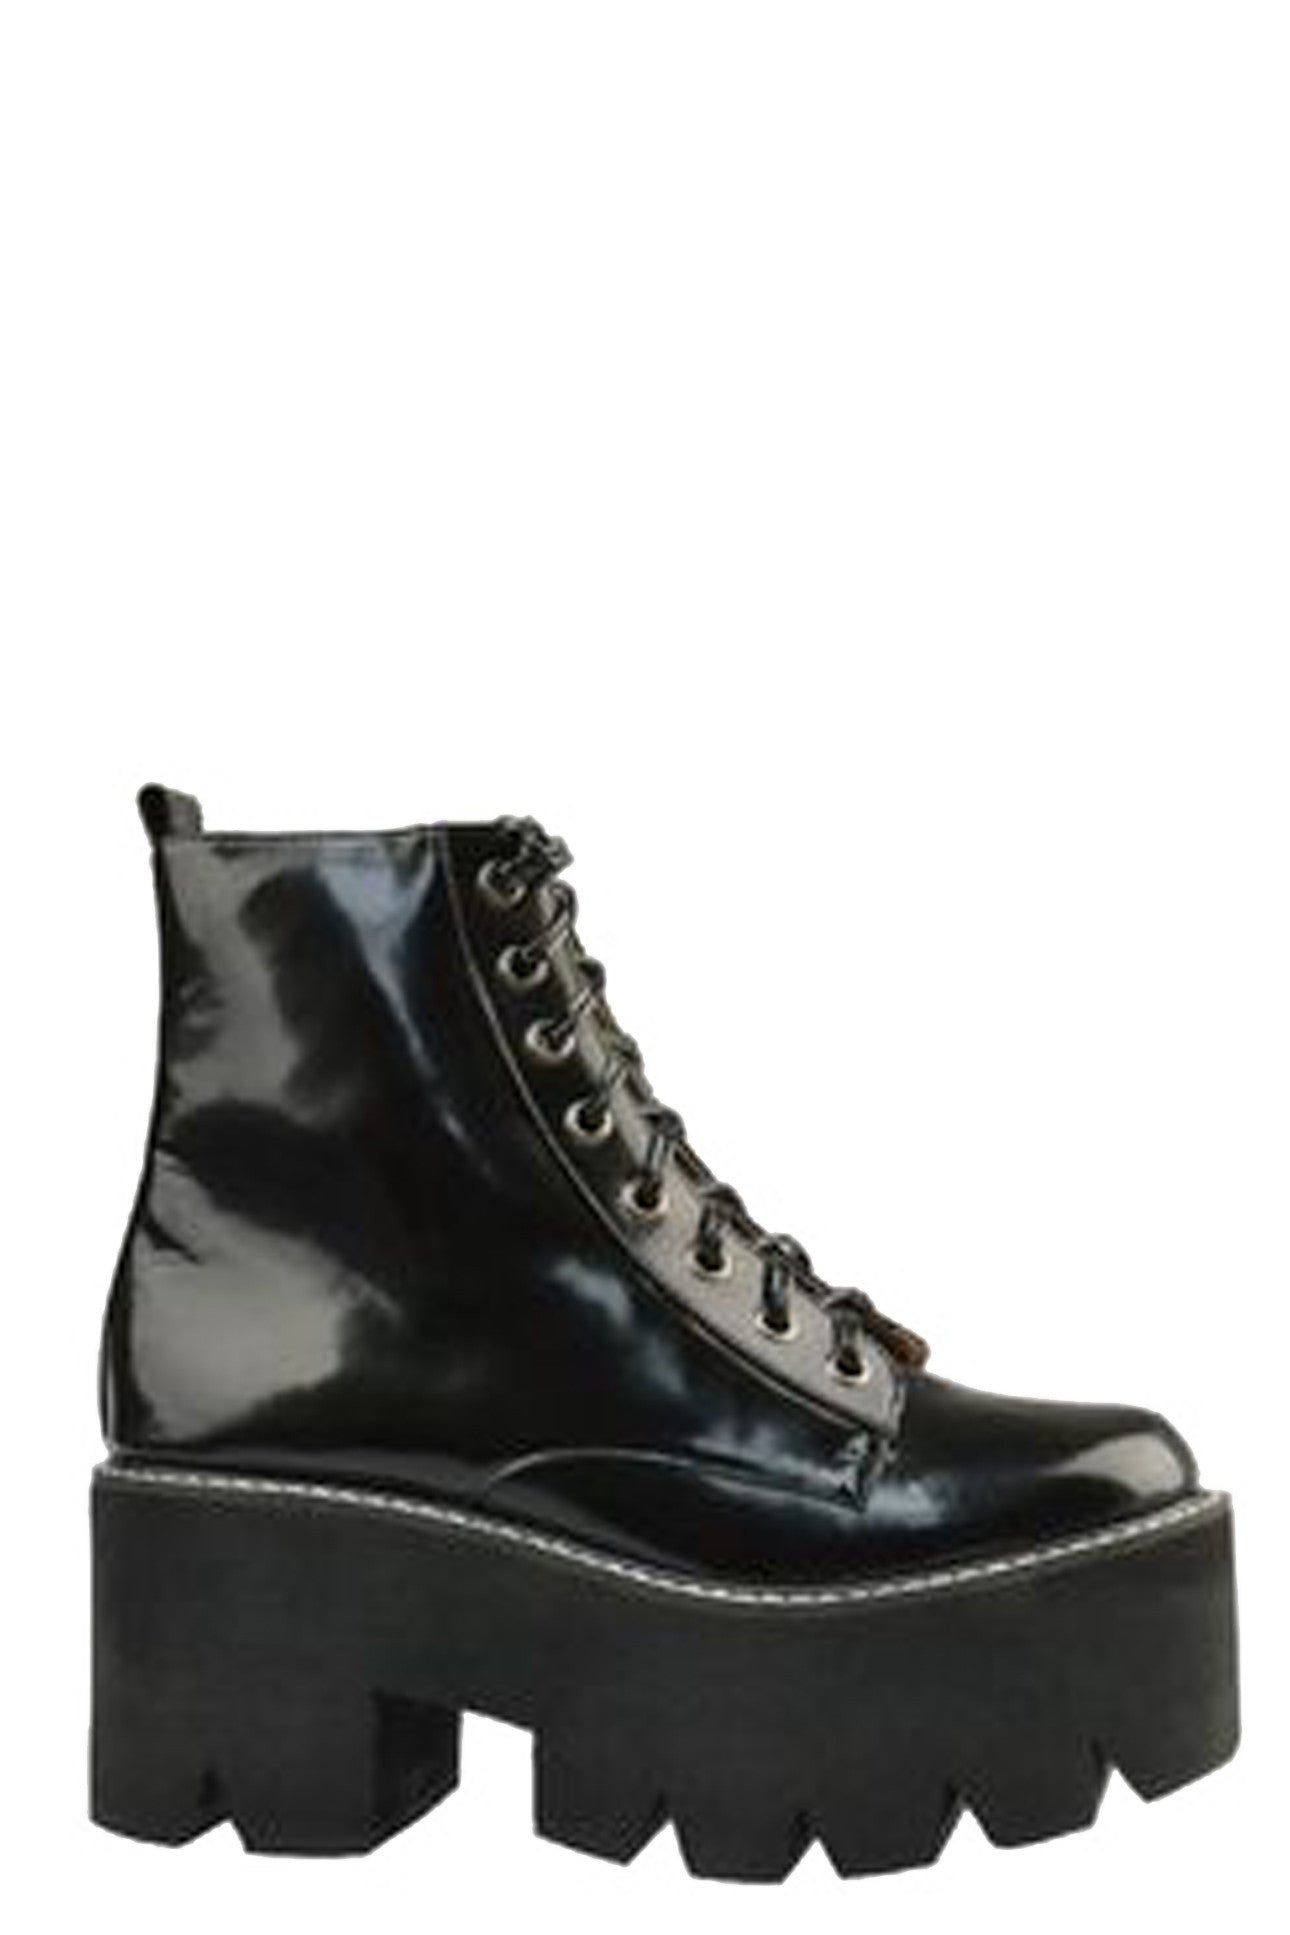 MICHIGAN LACE-UP COMBAT BOOT - MeMata  - 1